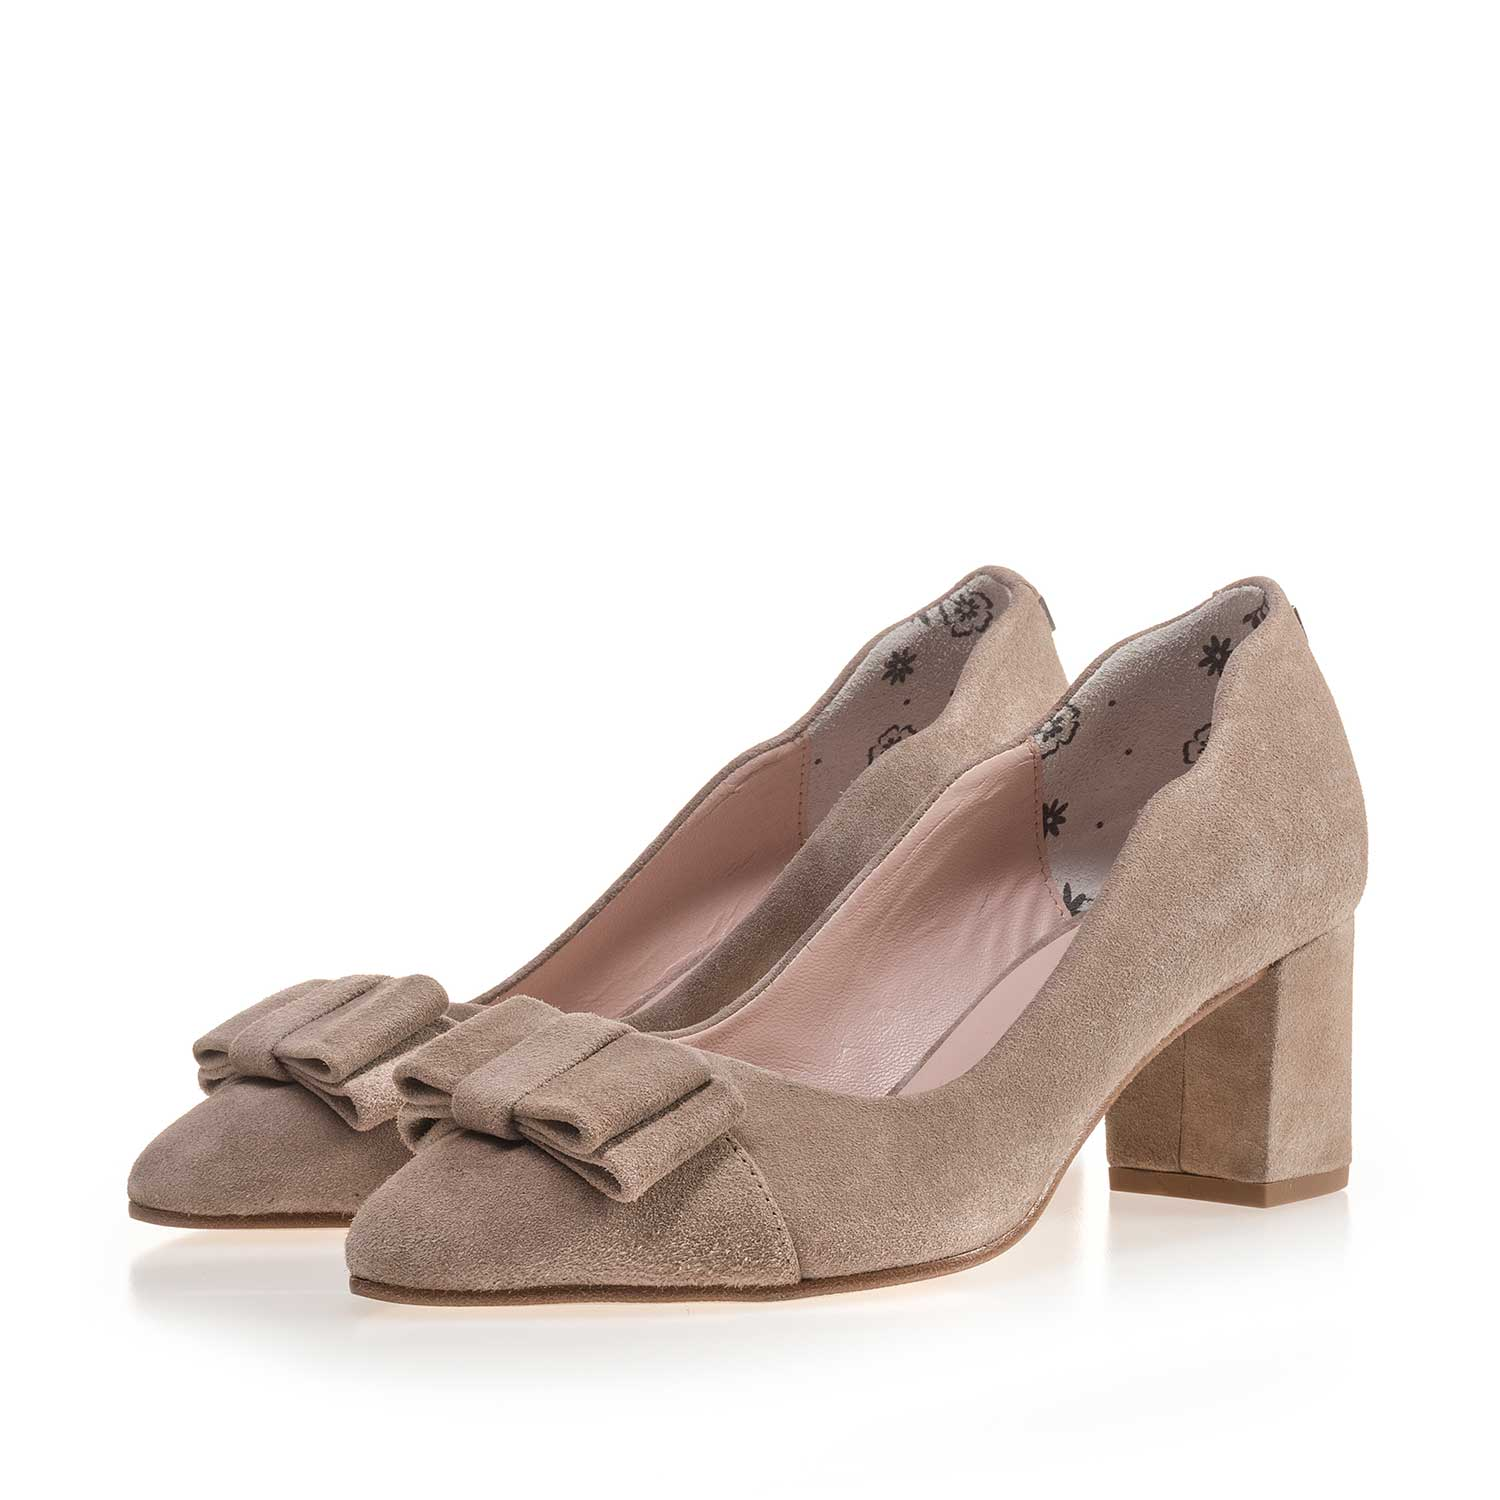 85186/04 - Taupe-coloured calf's suede leather bow pumps